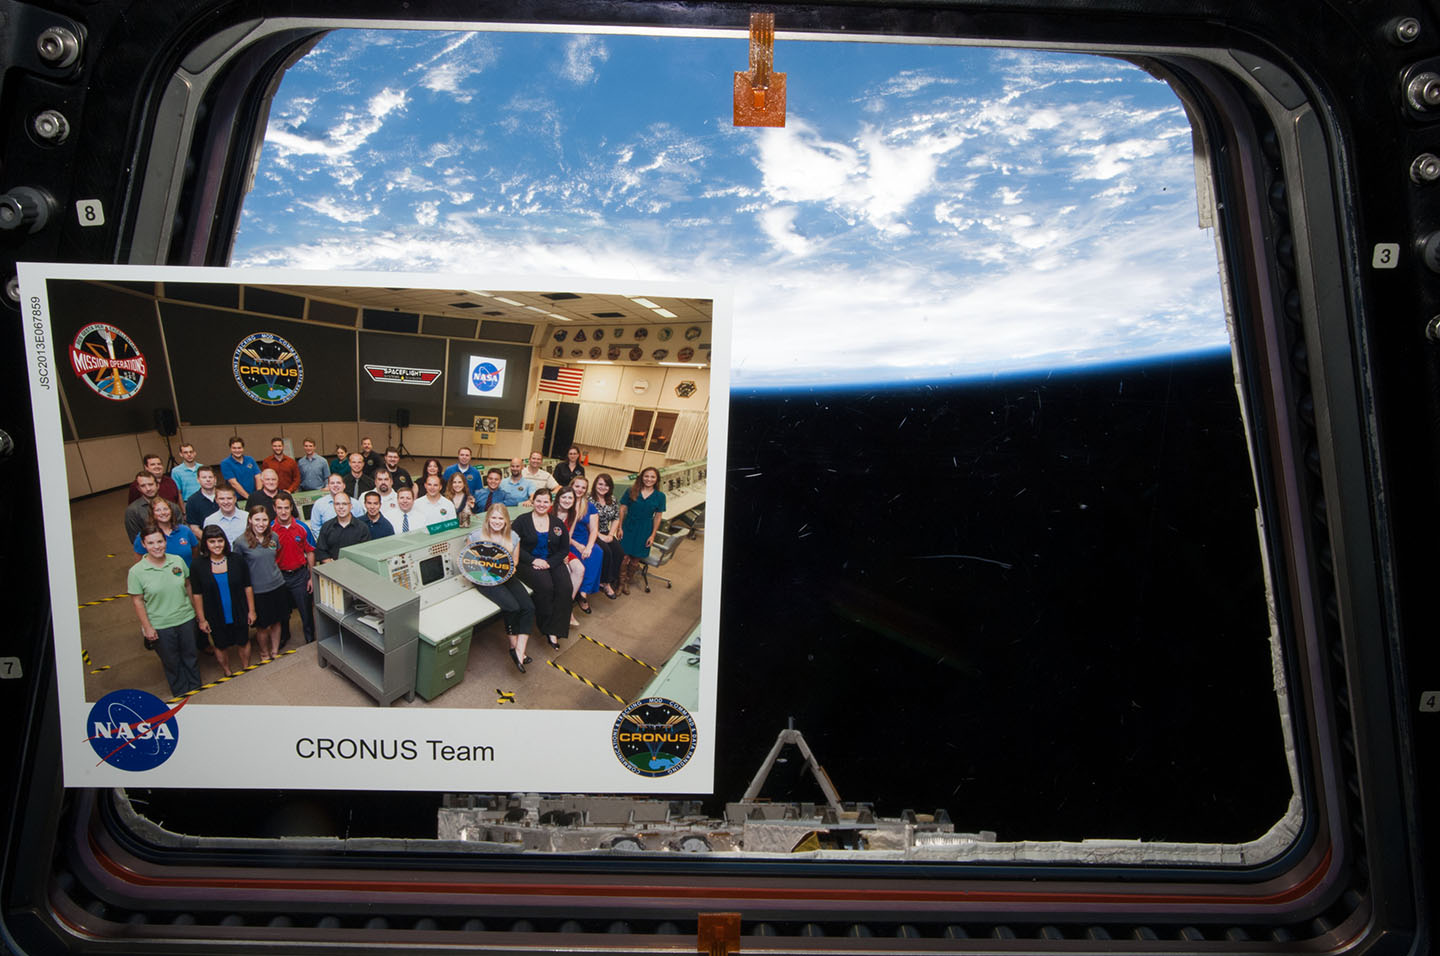 A photo of Kinney's group at NASA, CRONUS, inside the International Space Station, brought by one of the astronauts as a thank you to the team Kinney worked with. (She is in the front seated row, fourth from left.)